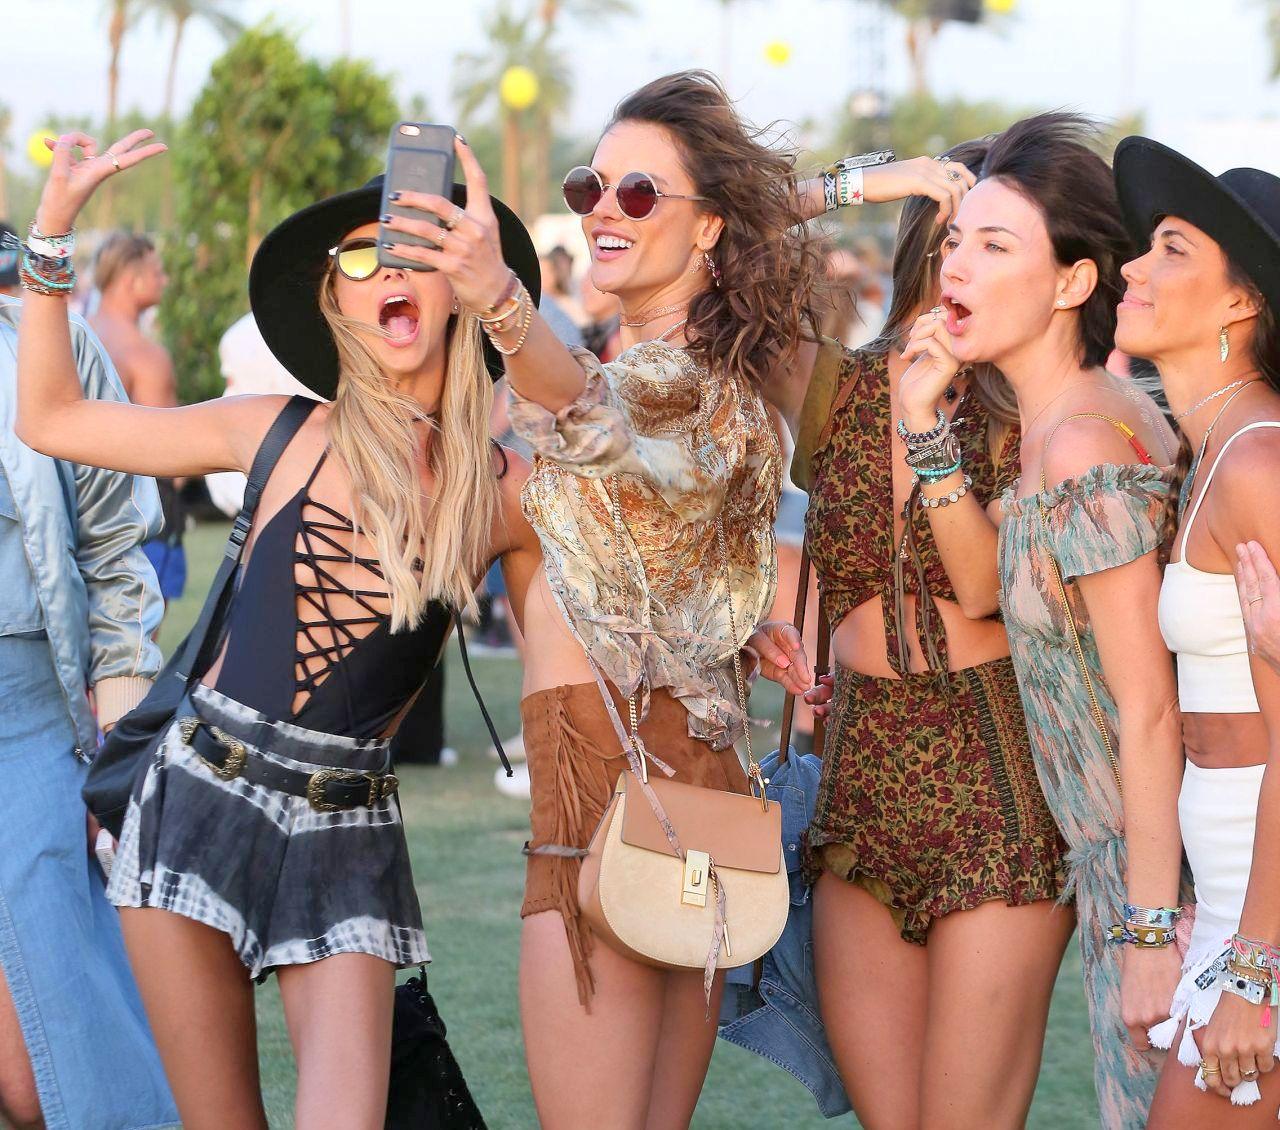 alessandra-ambrosio-the-coachella-valley-music-and-arts-festival-4-15-2016-7